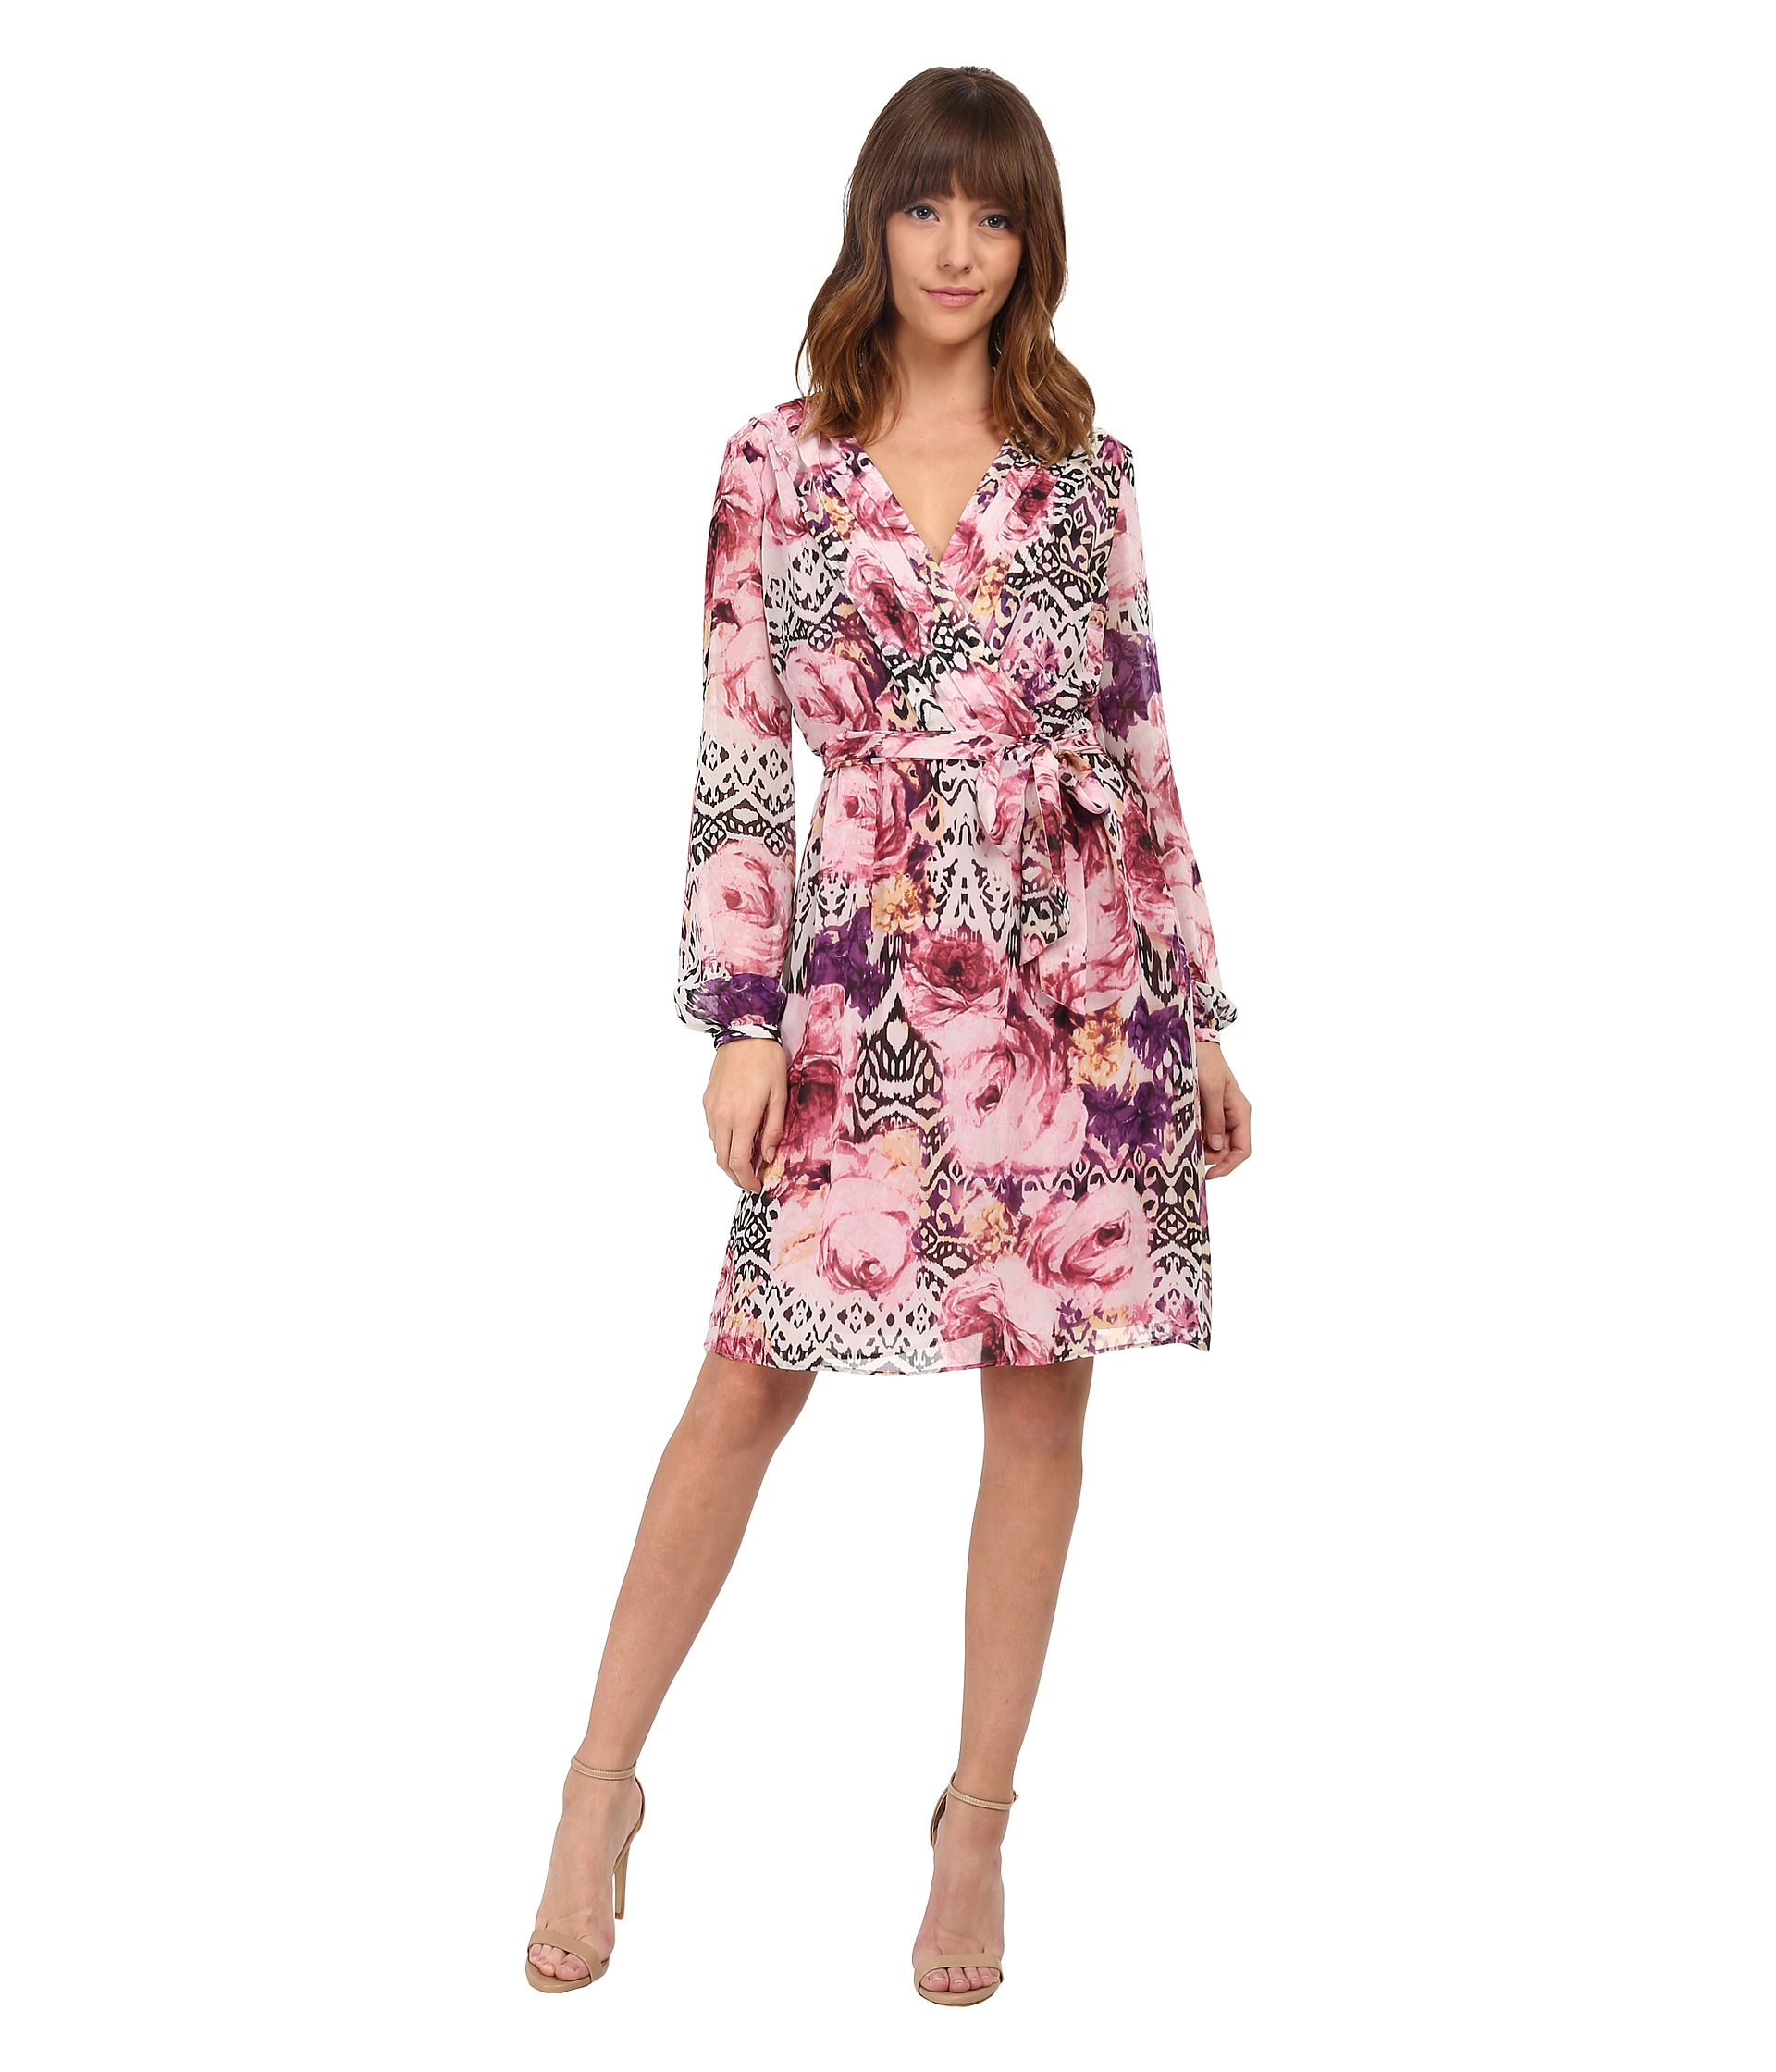 Jessica simpson Chiffon Long Sleeve Floral Dress in Pink - Lyst